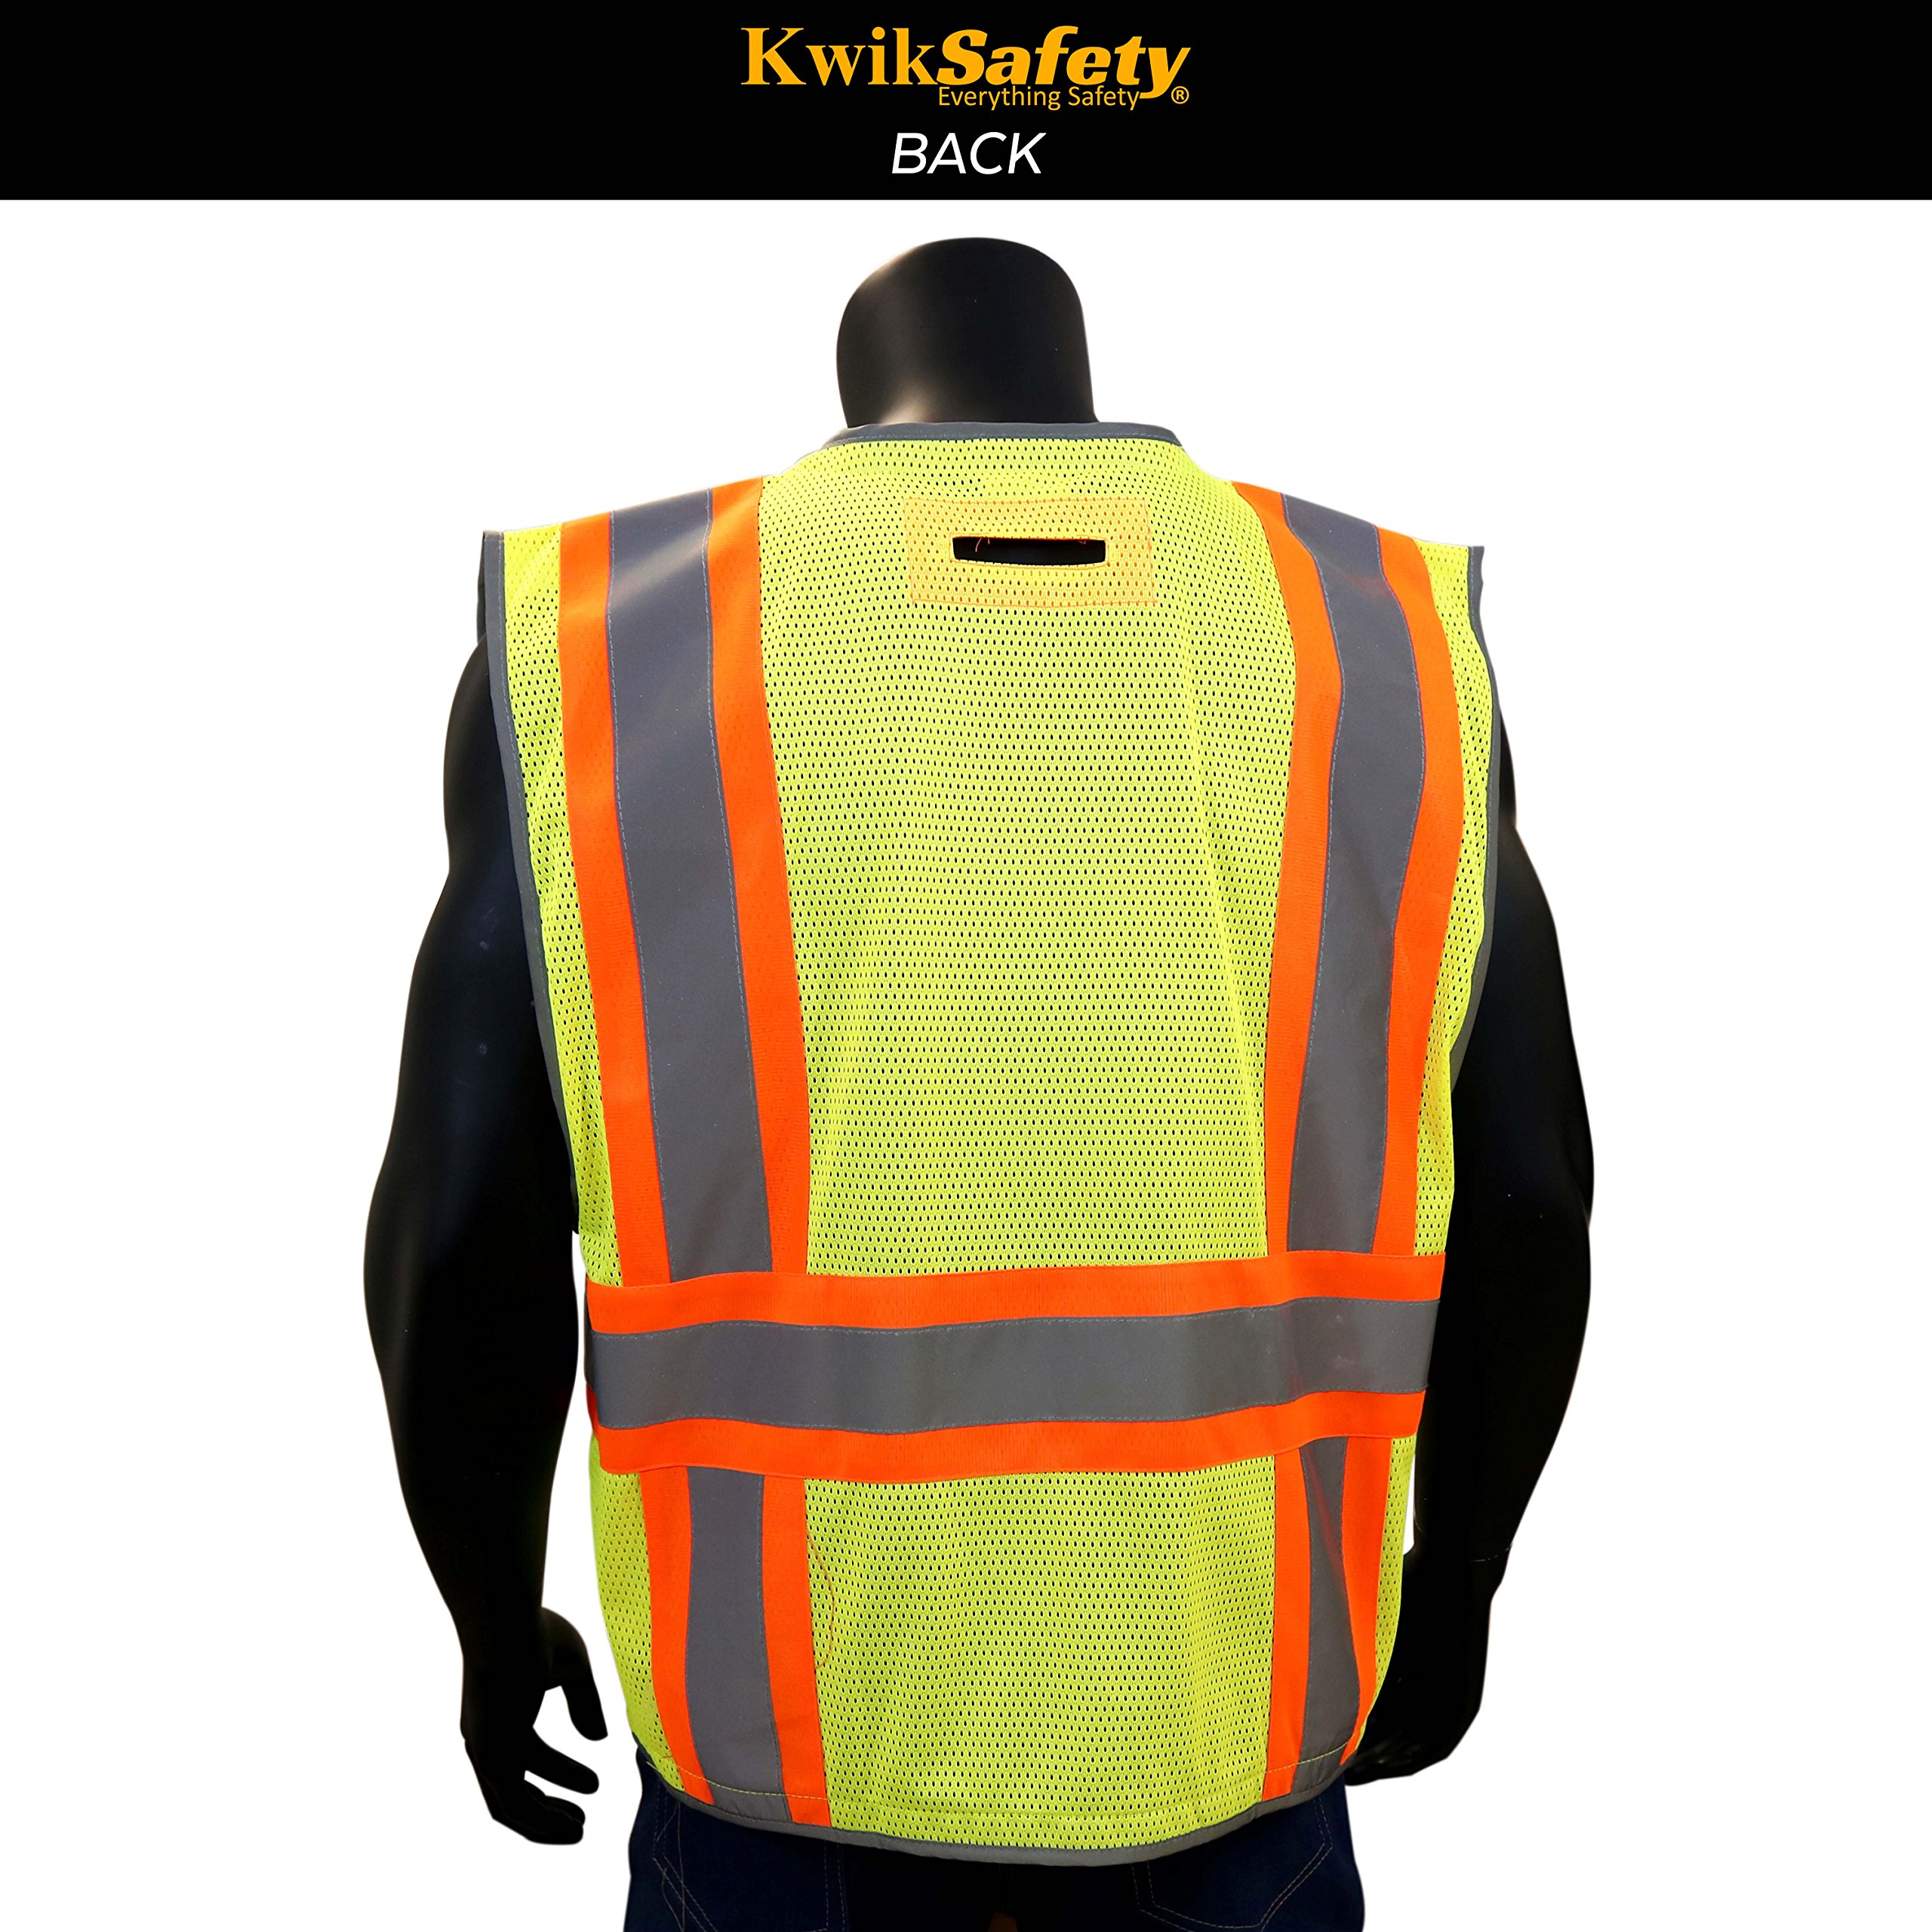 KwikSafety PILOT | Drone Safety Vest | Class 2 ANSI Compliant FAA Licensed | 360° High Visibility Reflective UAG Work Wear | Hi Vis Certified Commercial Pilot Men & Women Regular to Oversized | XL by KwikSafety (Image #2)